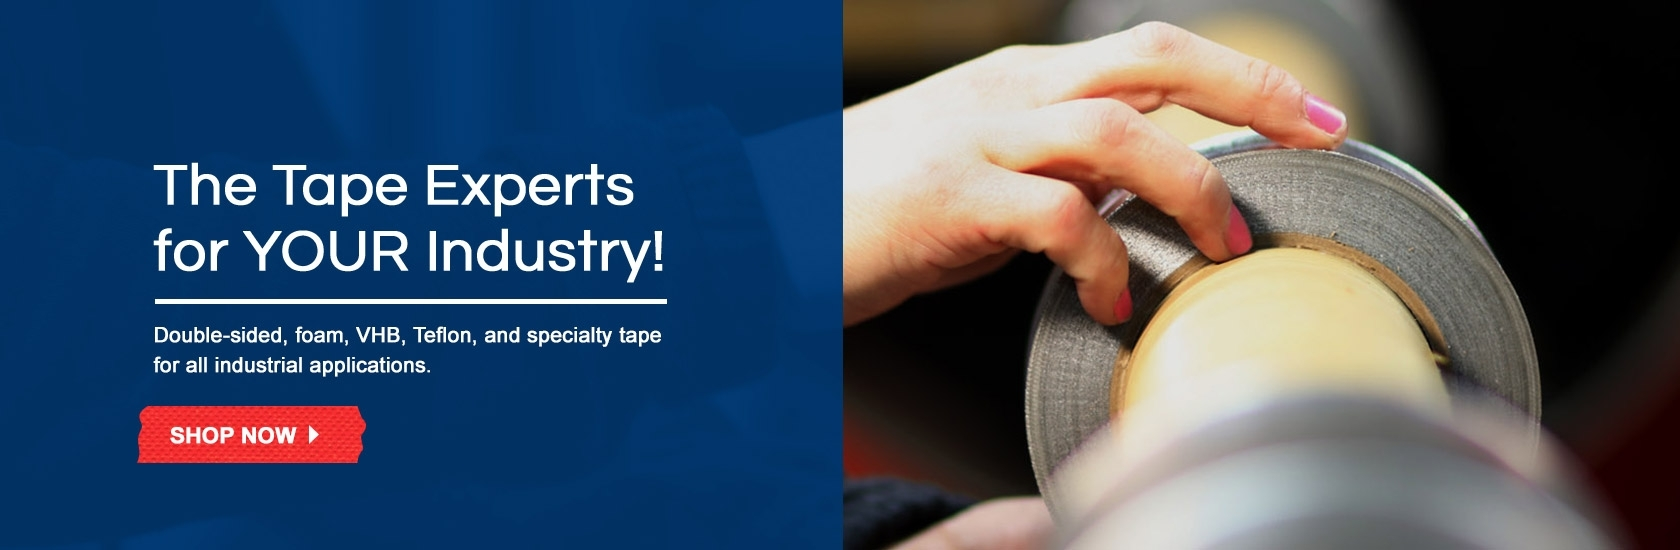 The Tape Experts for your industry